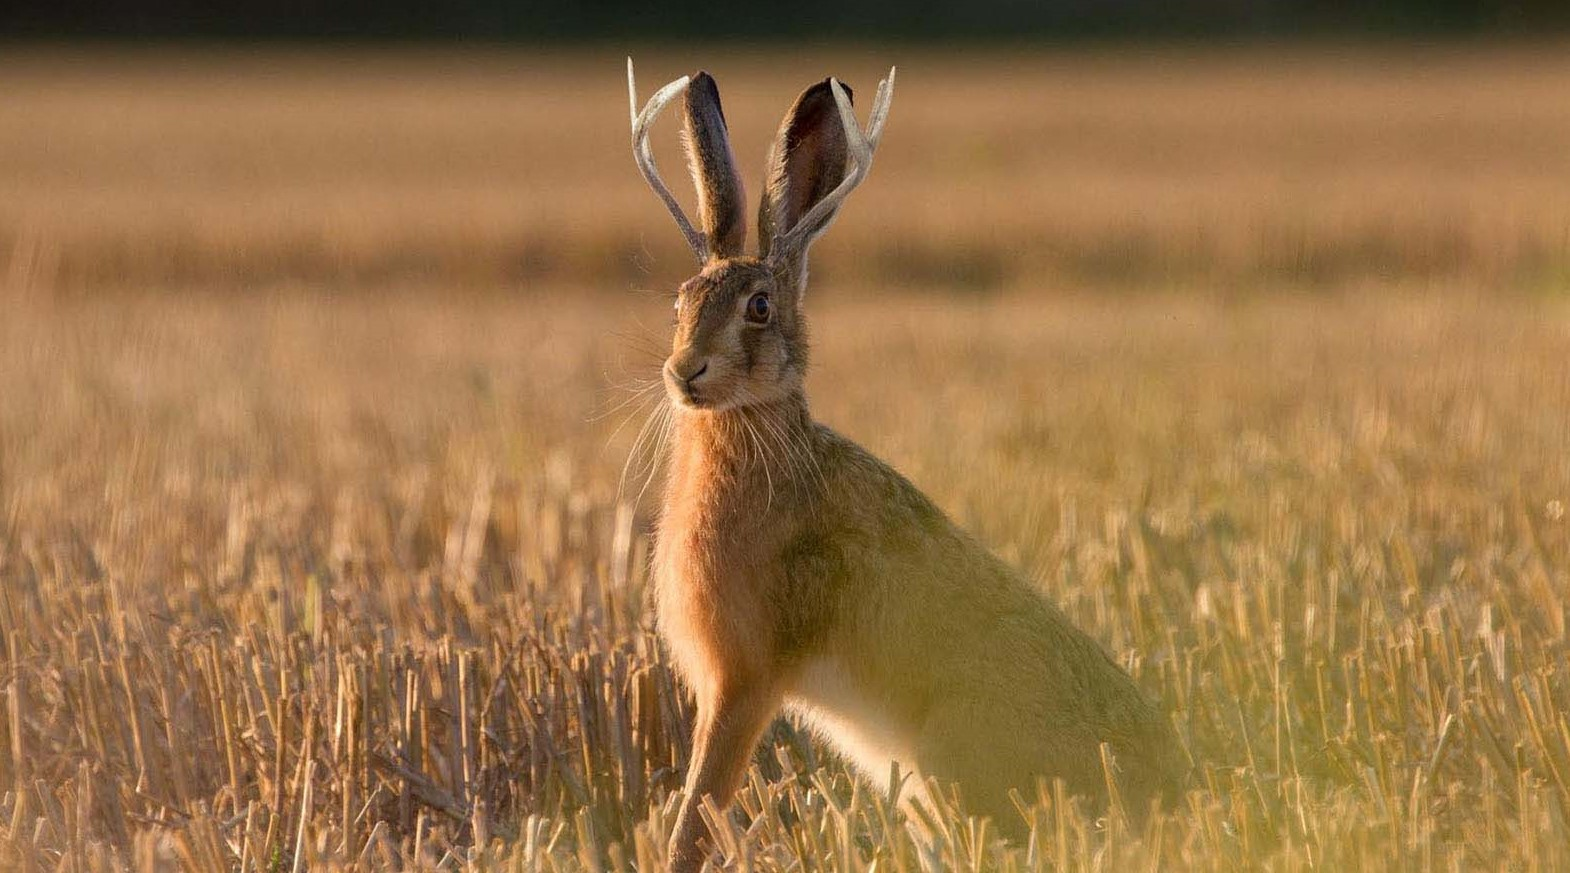 Jackalope Removed from Endangered Species List in Idaho